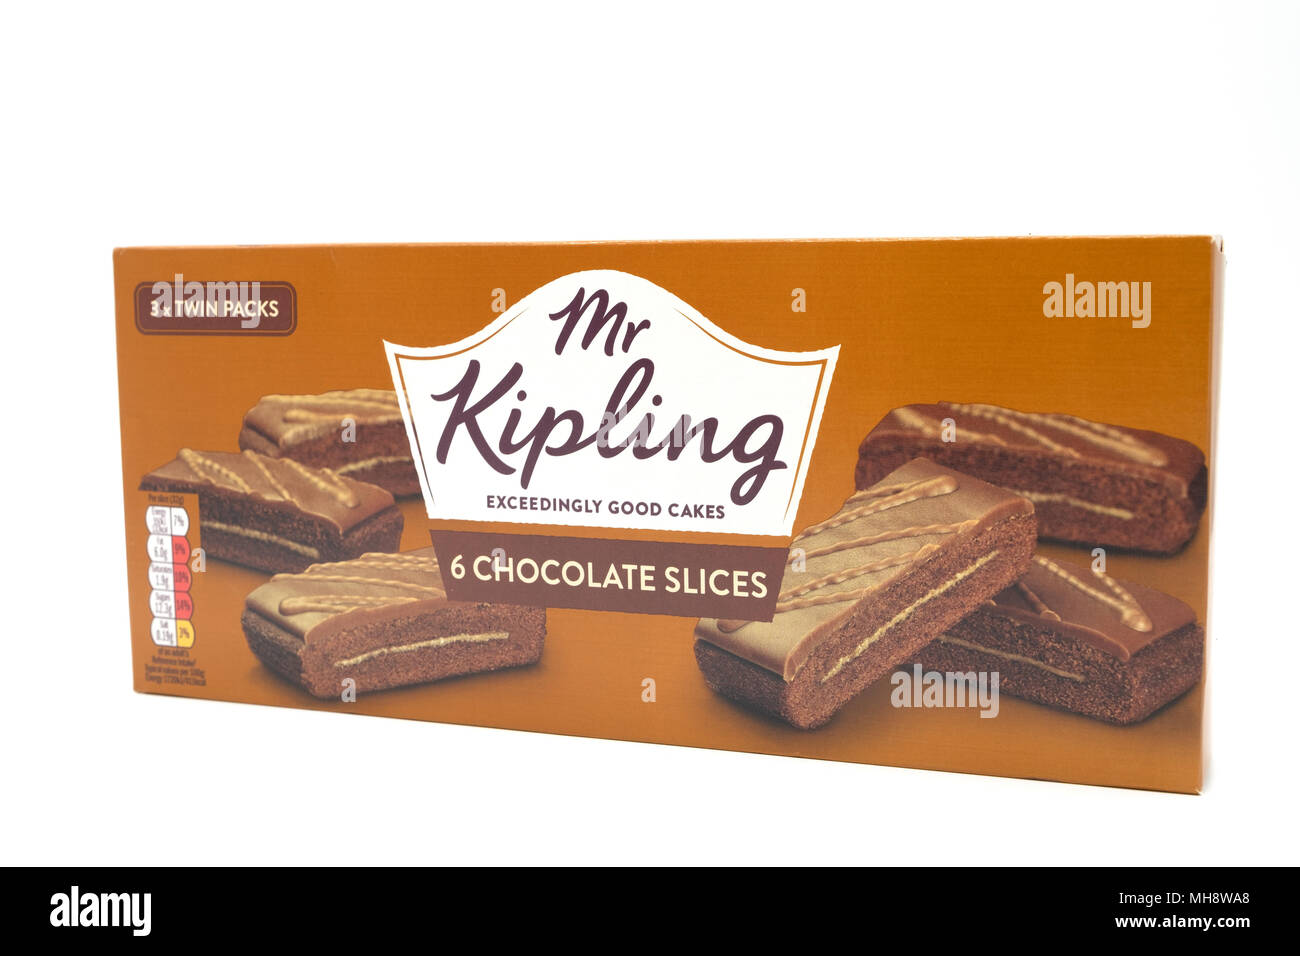 Largs, SCotland, UK - April 25, 2018:                                       Mr Kipling Cake Slices in a Recyclable Cardboard Box in agreement with UK  - Stock Image